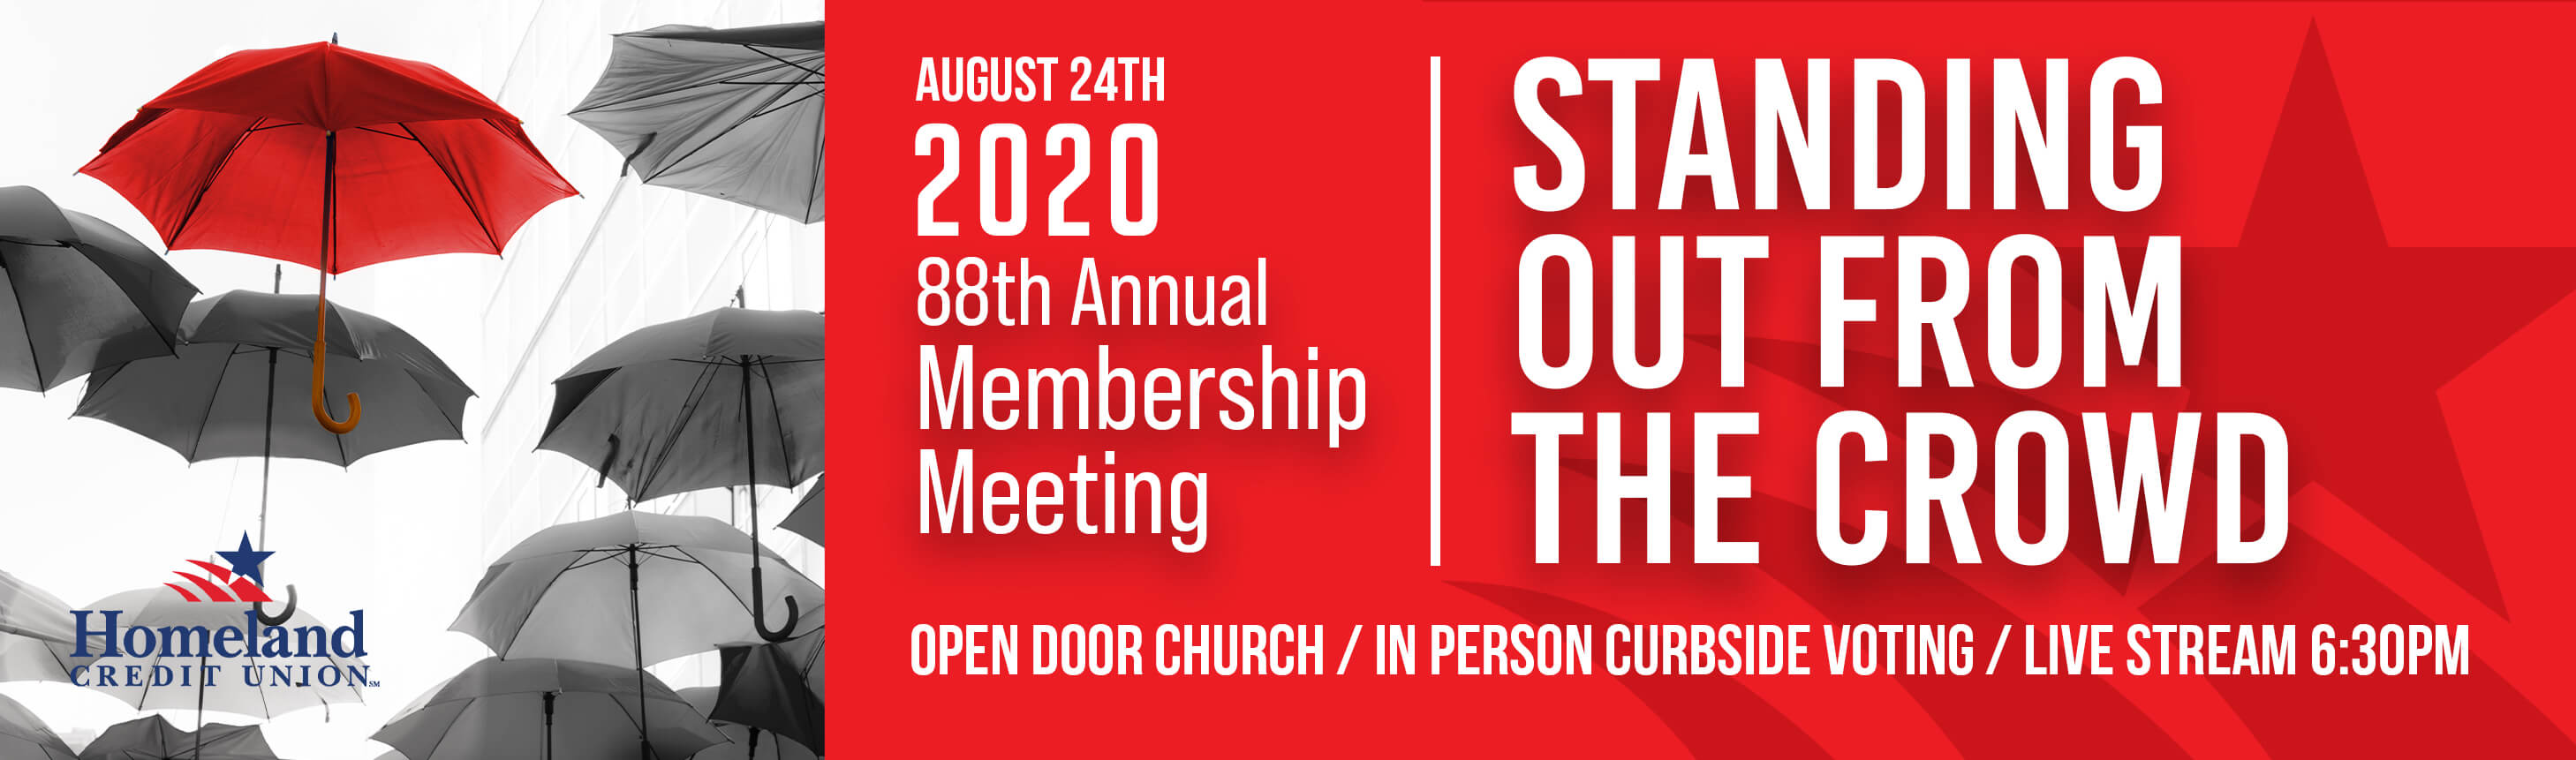 August 24, 2020. 88th Annual Membership Meeting. Standing Out From The Crowd. Open Door Church. In Person curbside voting. Live Stream 6:30pm.